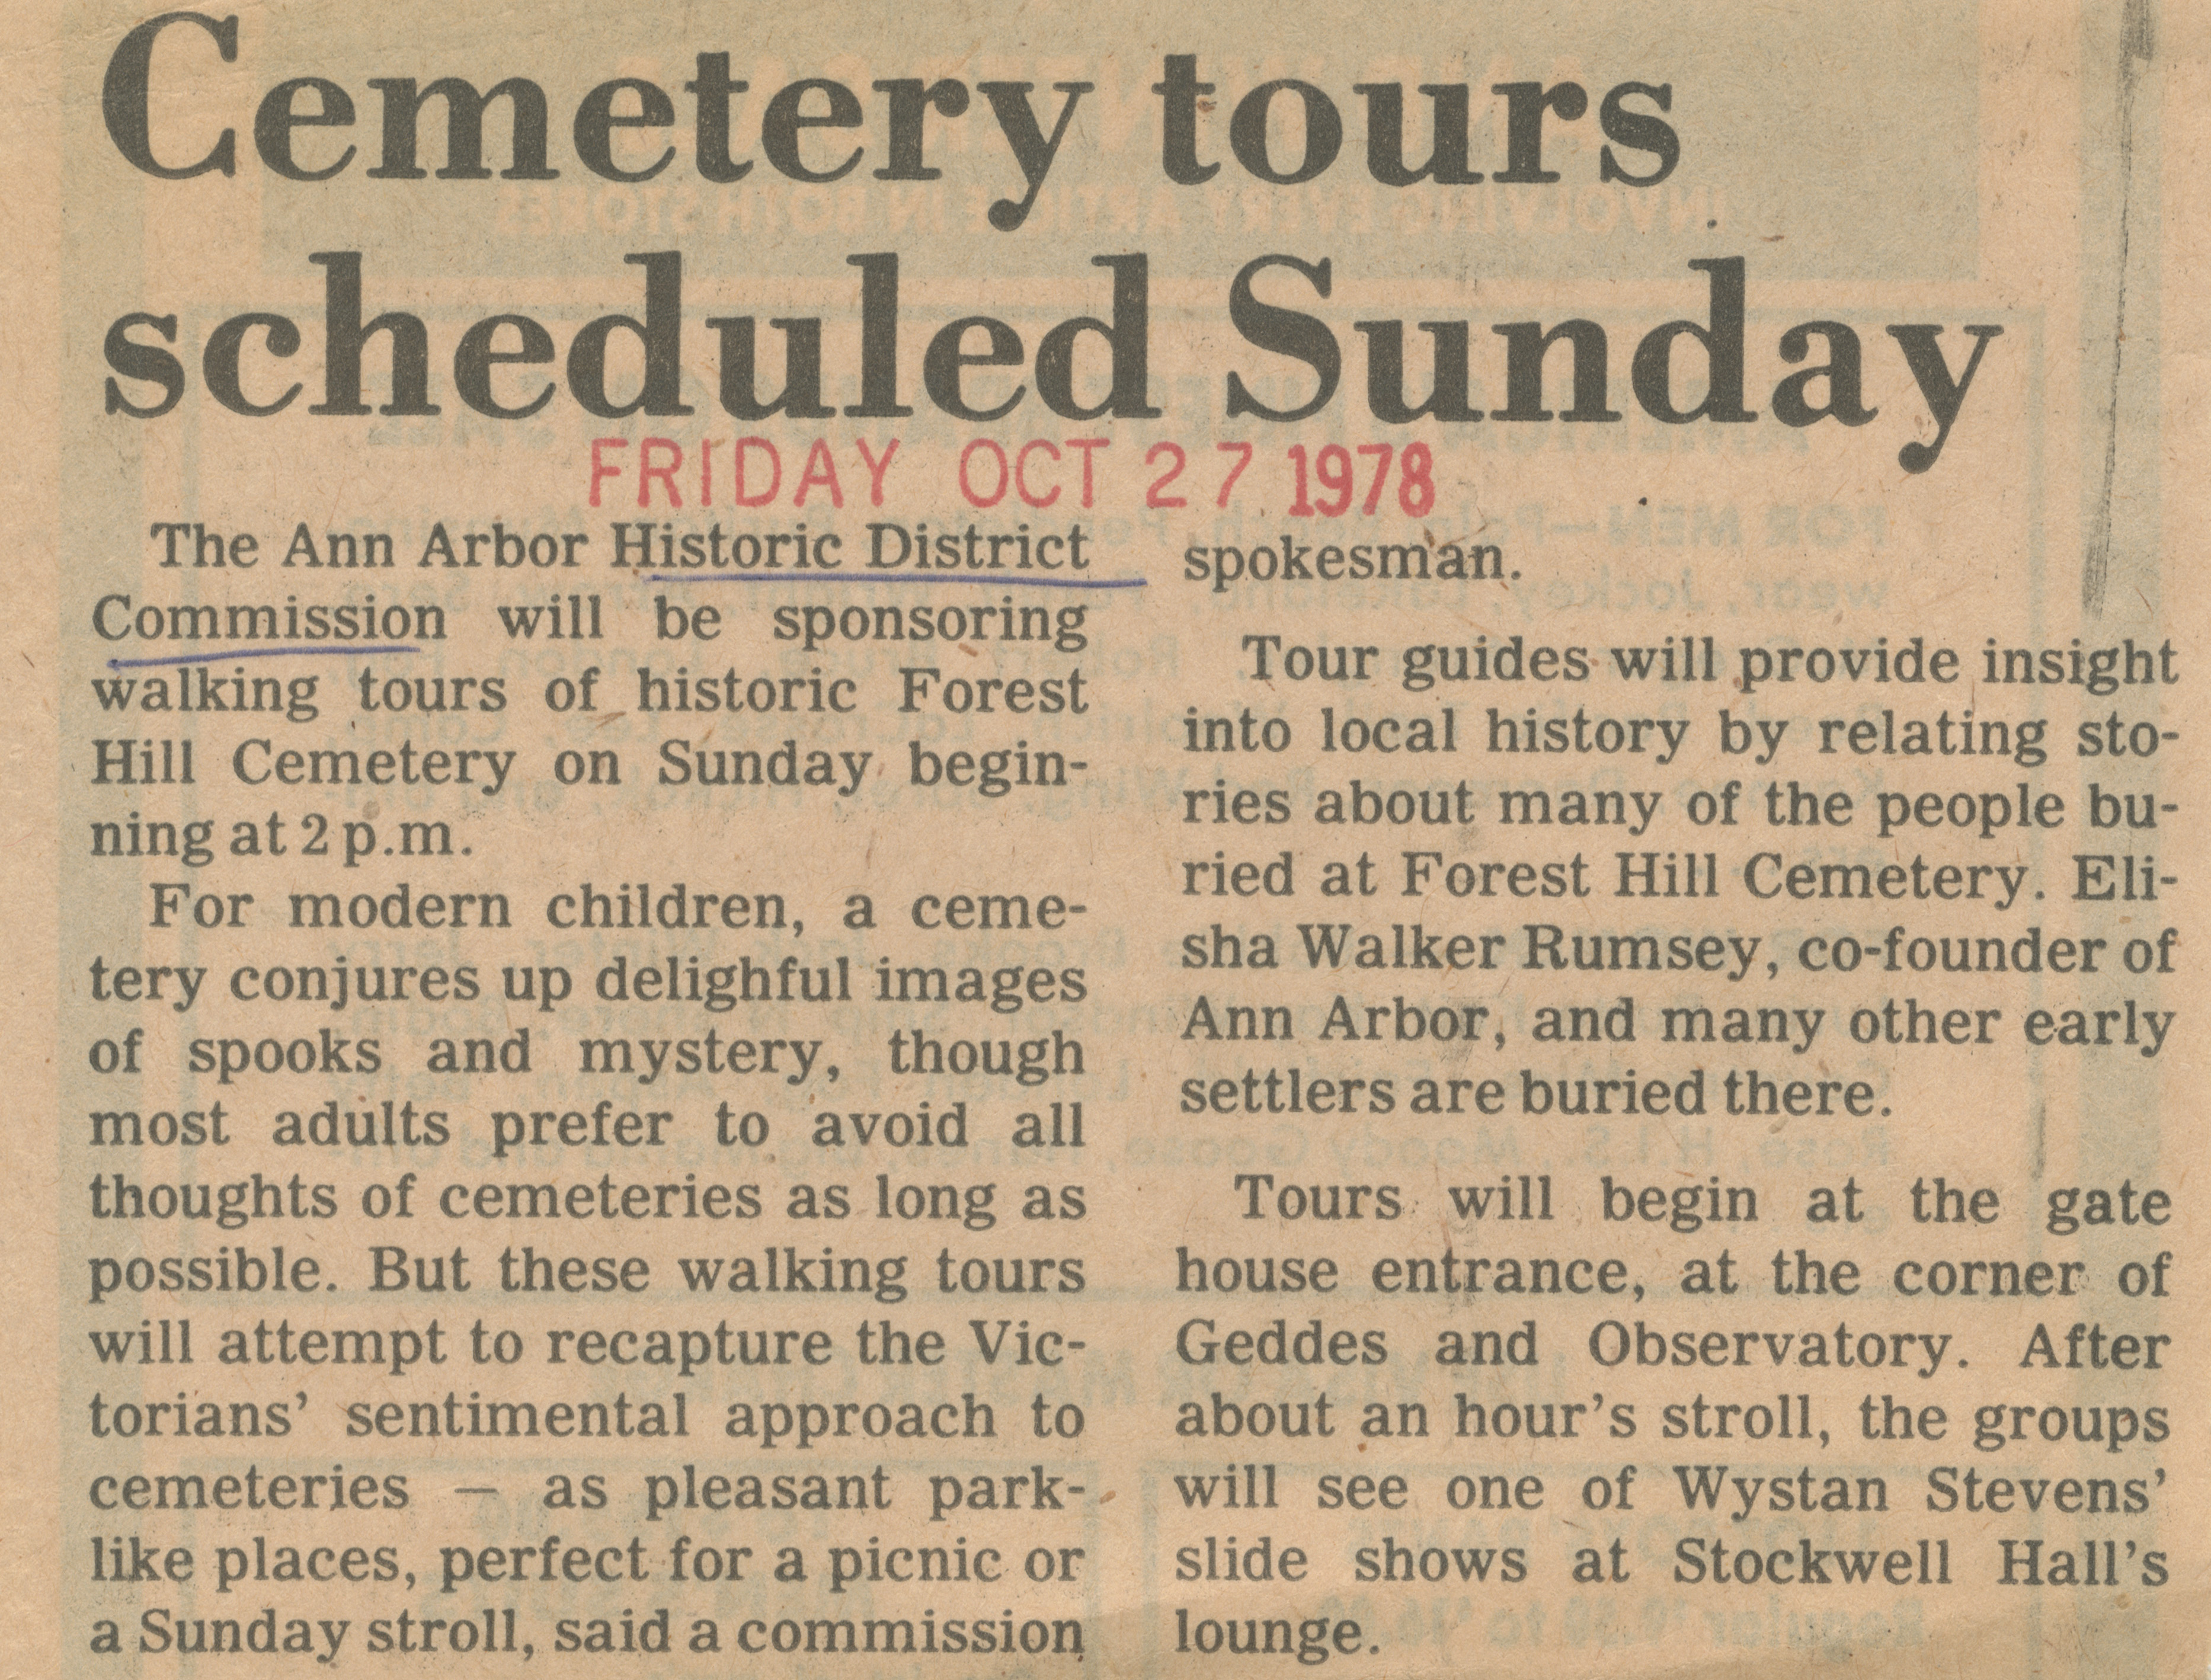 Cemetery tours scheduled Sunday image